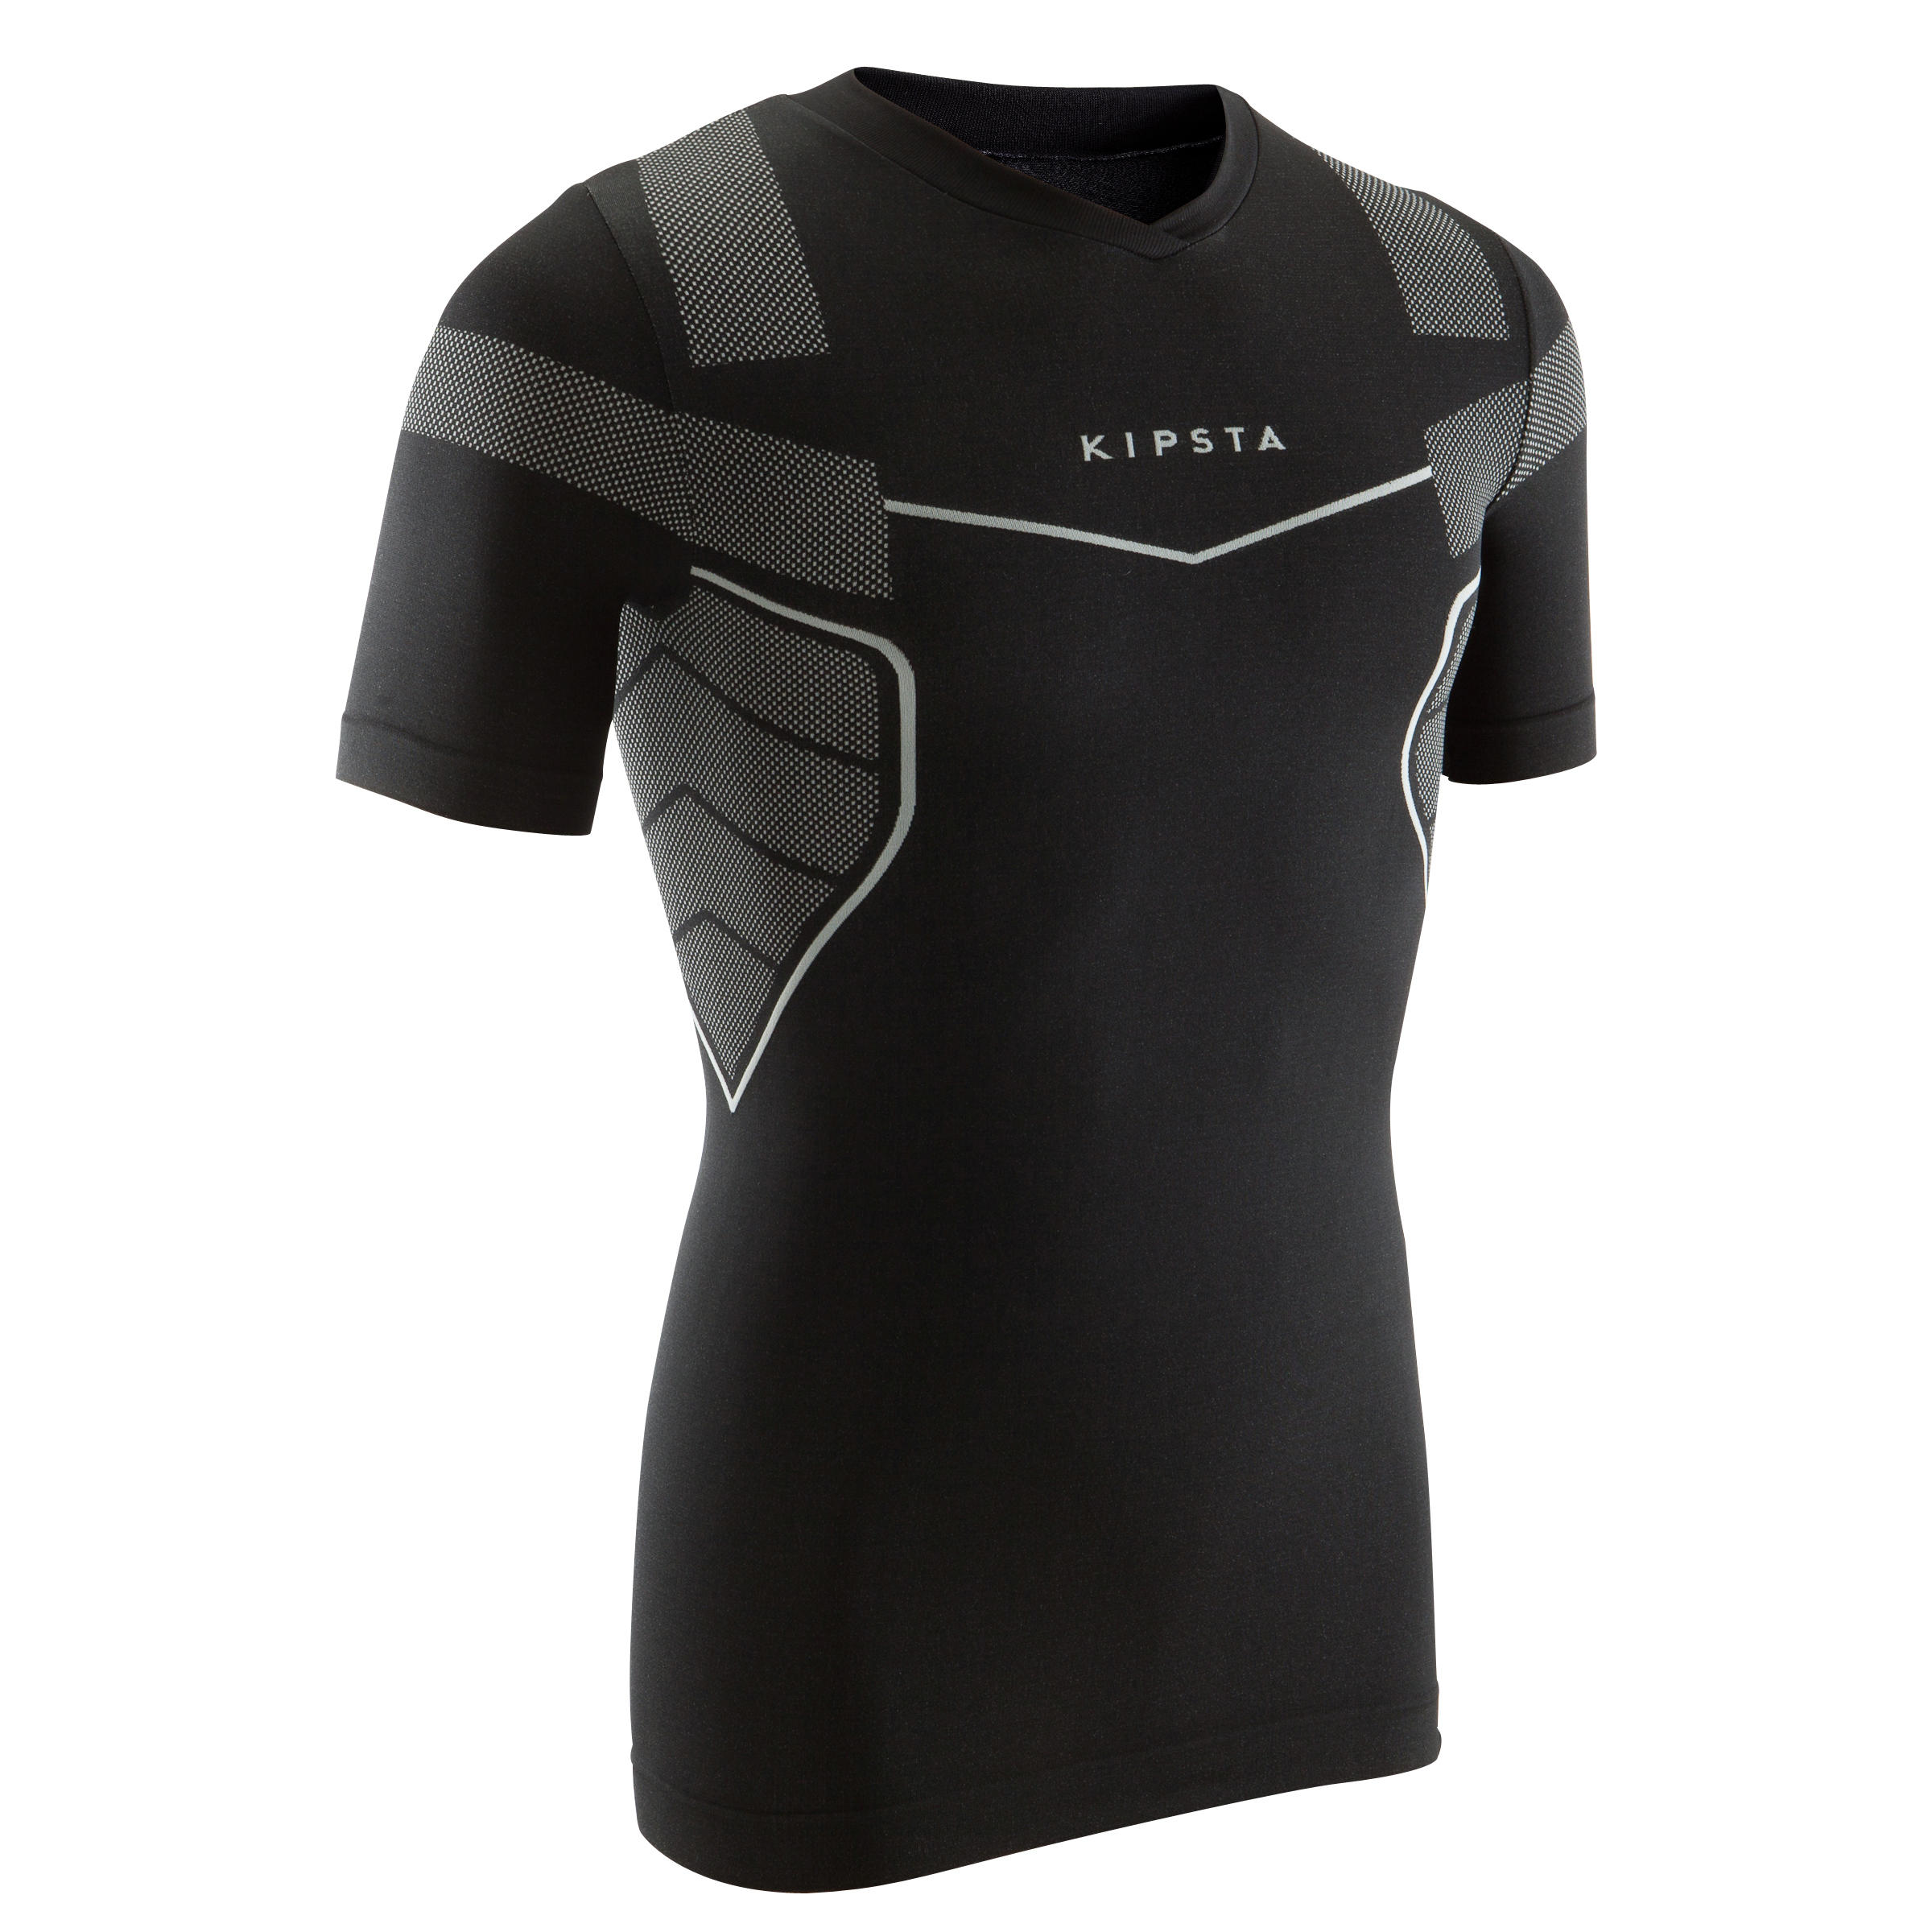 Keepdry 500 Adult Breathable Short-Sleeved Base Layer - Black